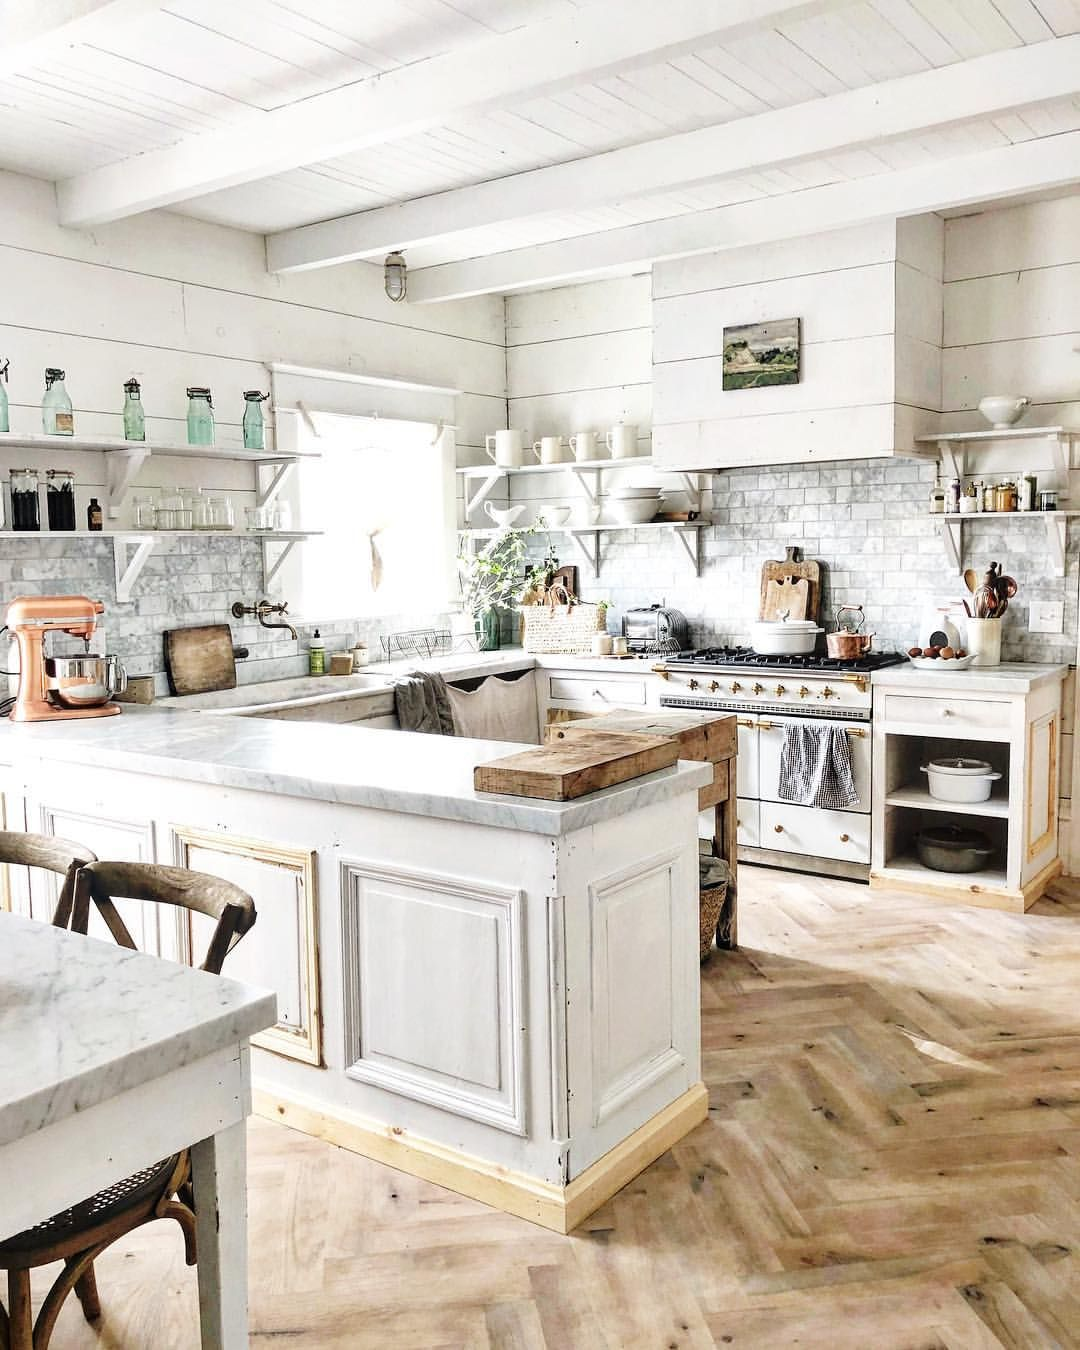 If My House Looks Unfinished In Pictures That S Because It Isn T Finished We Are Finishing Trimming French Kitchen Decor Kitchen Inspirations Kitchen Decor